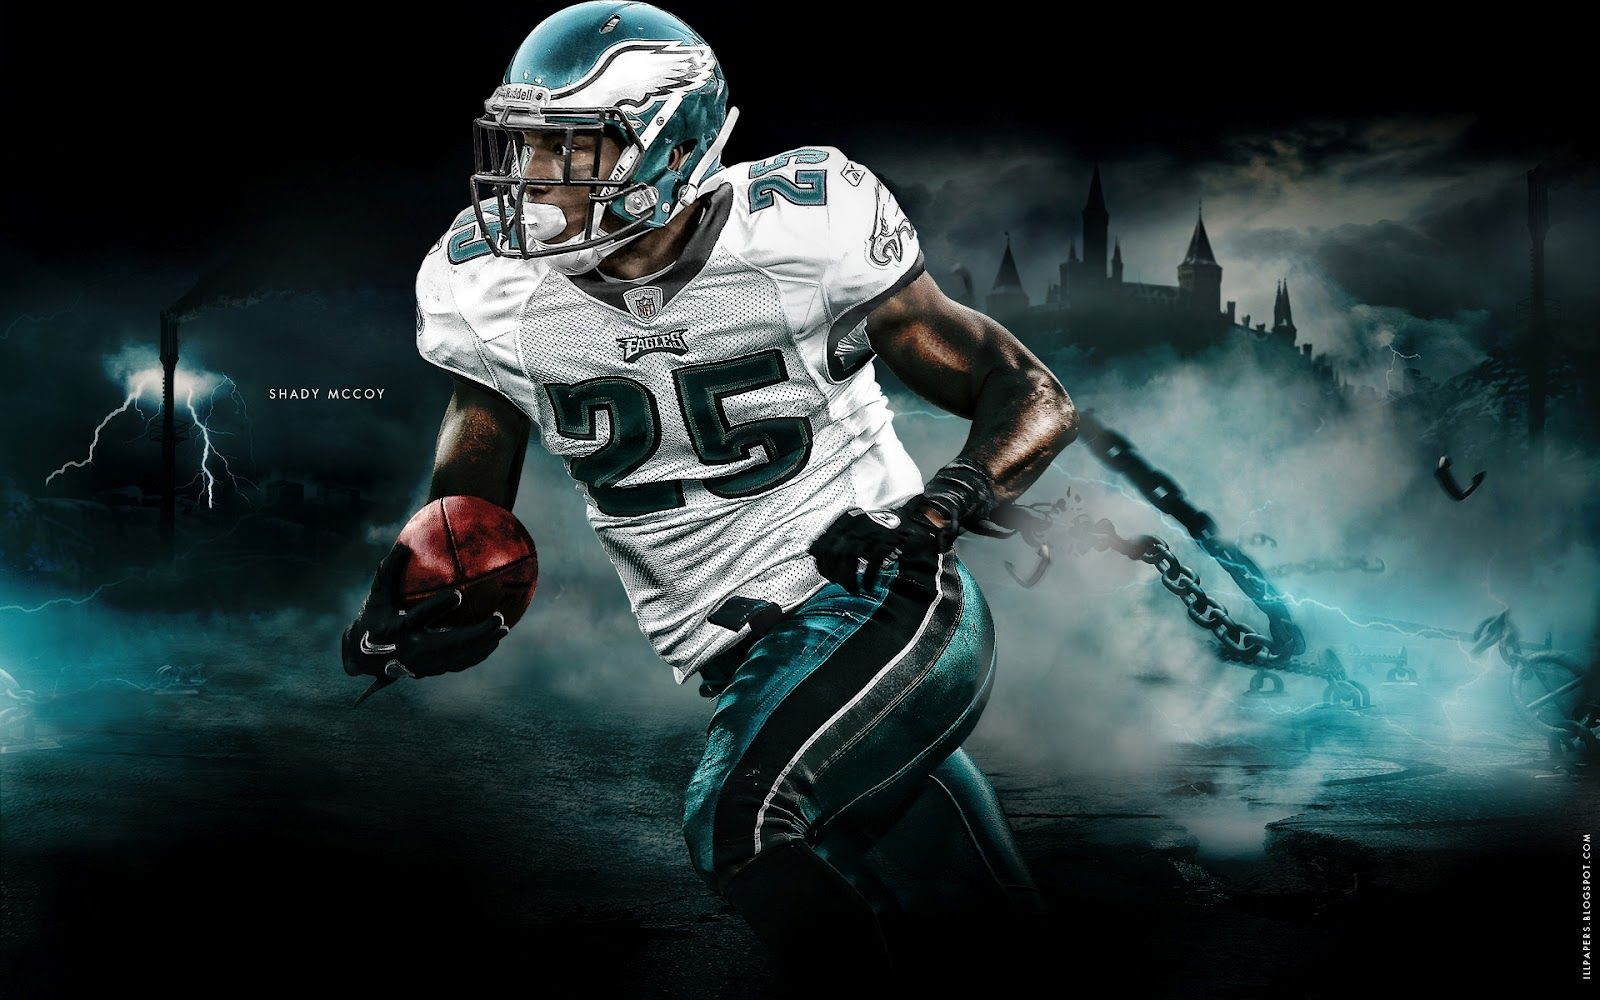 Free Philadelphia Eagles Desktop Wallpaper 1365 1024 Free Philadelphia Eagles Wallpap Nfl Football Wallpaper Football Wallpaper Philadelphia Eagles Wallpaper